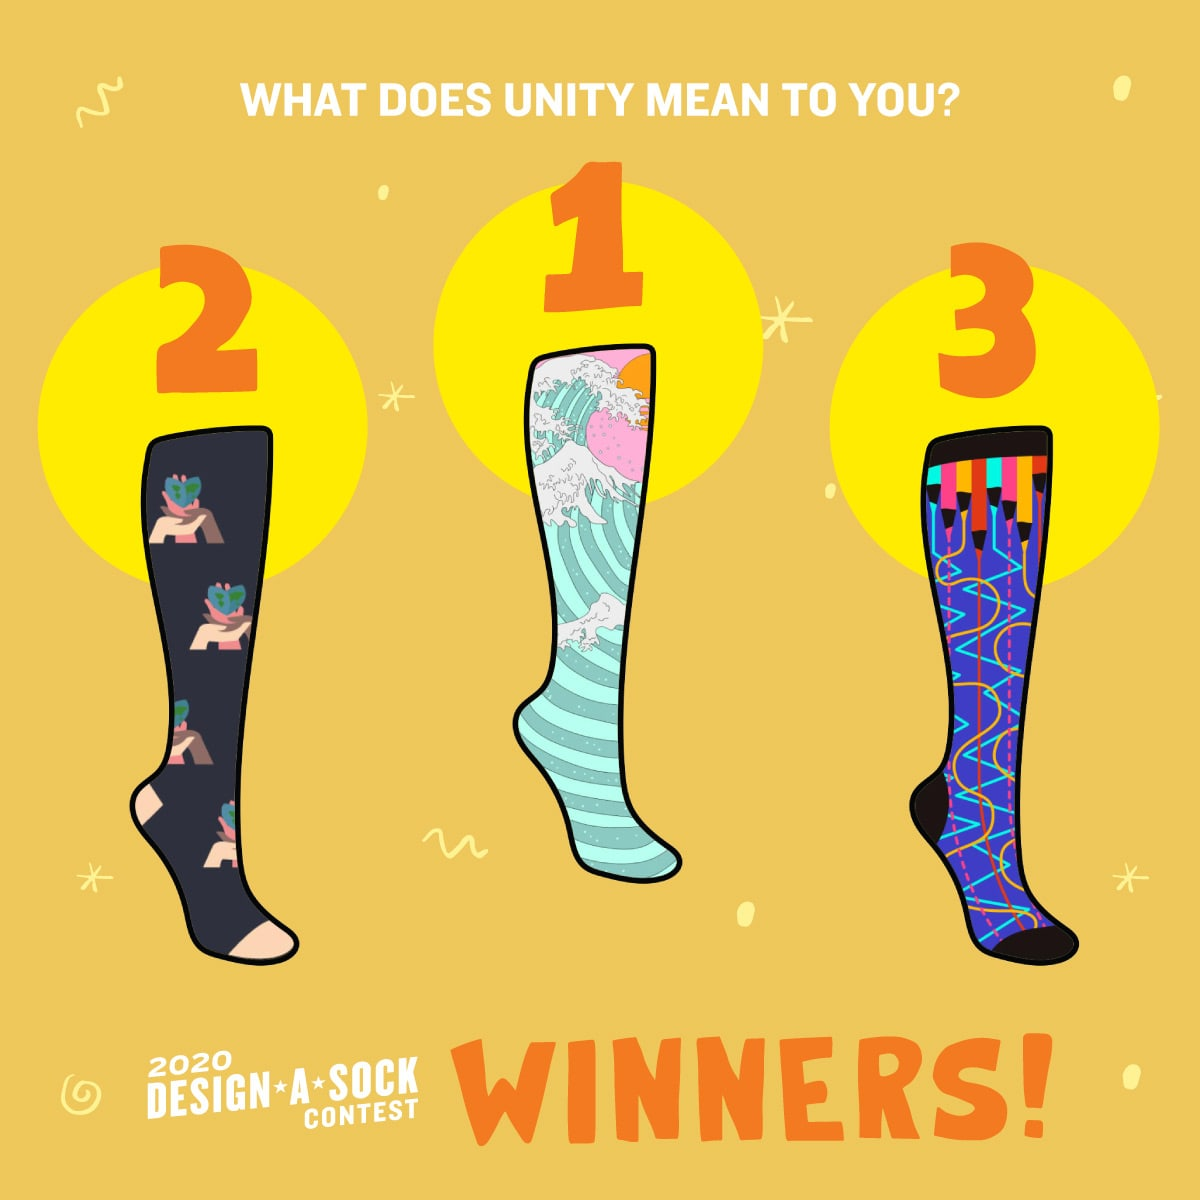 Design-a-Sock 2020 winners